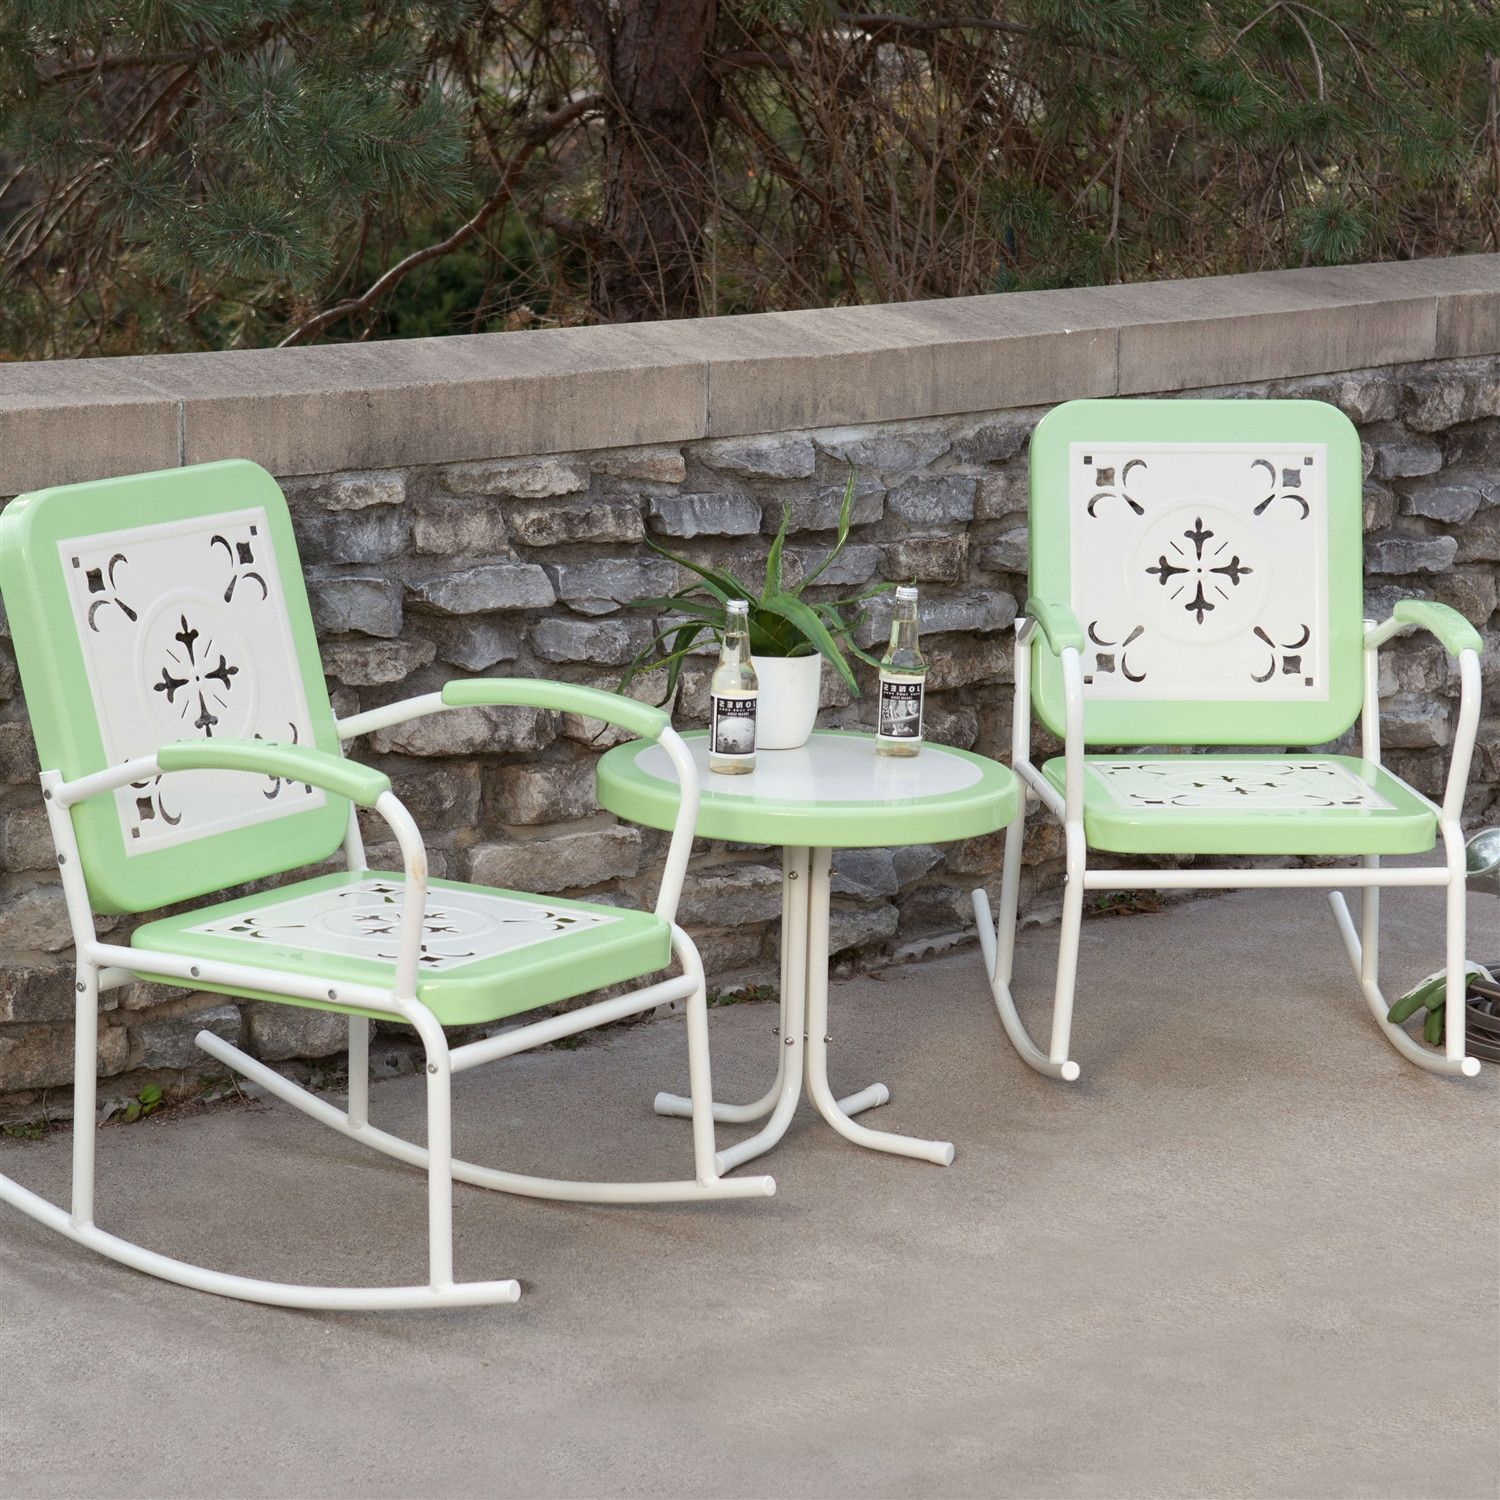 Mint Green Retro Patio 3 Piece Metal Rocker Rocking Chair